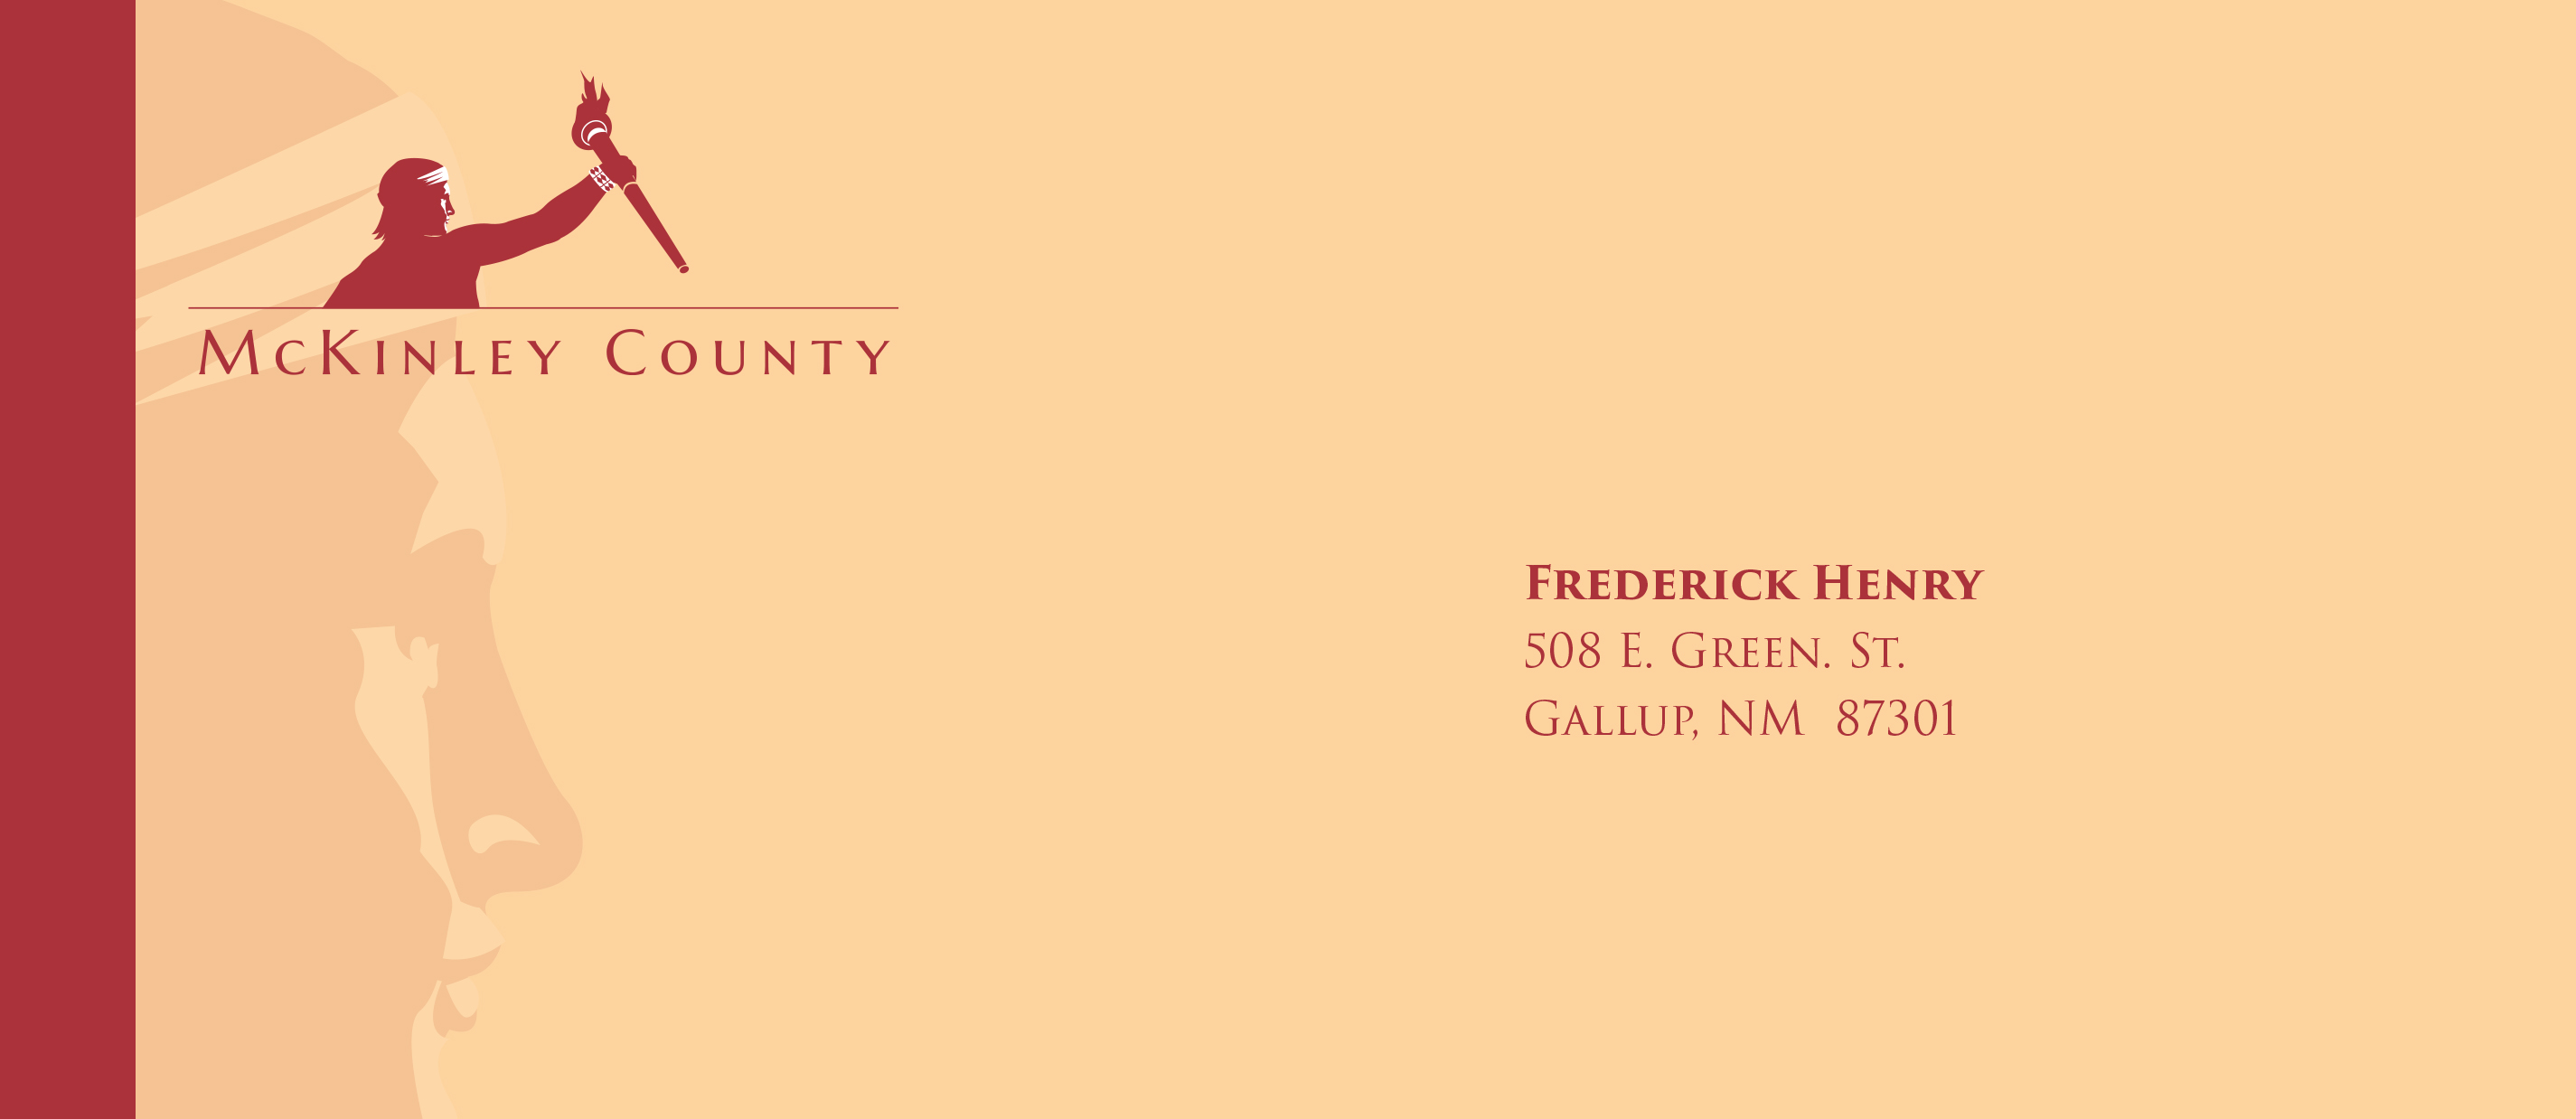 McKinley County Envelope Mockup